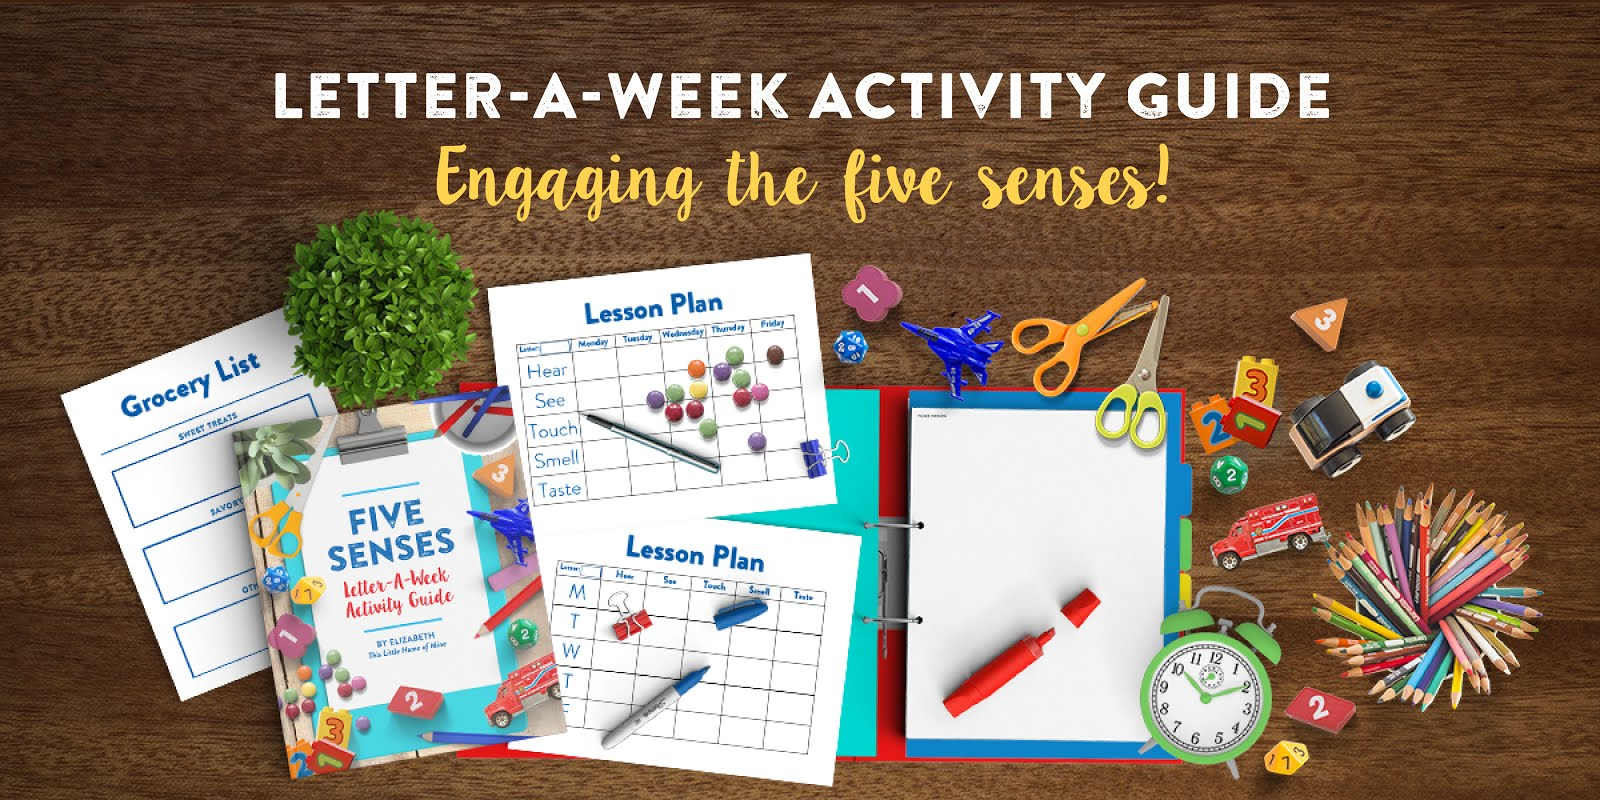 Recommended Reading: Letter-a-Week Activity Guide